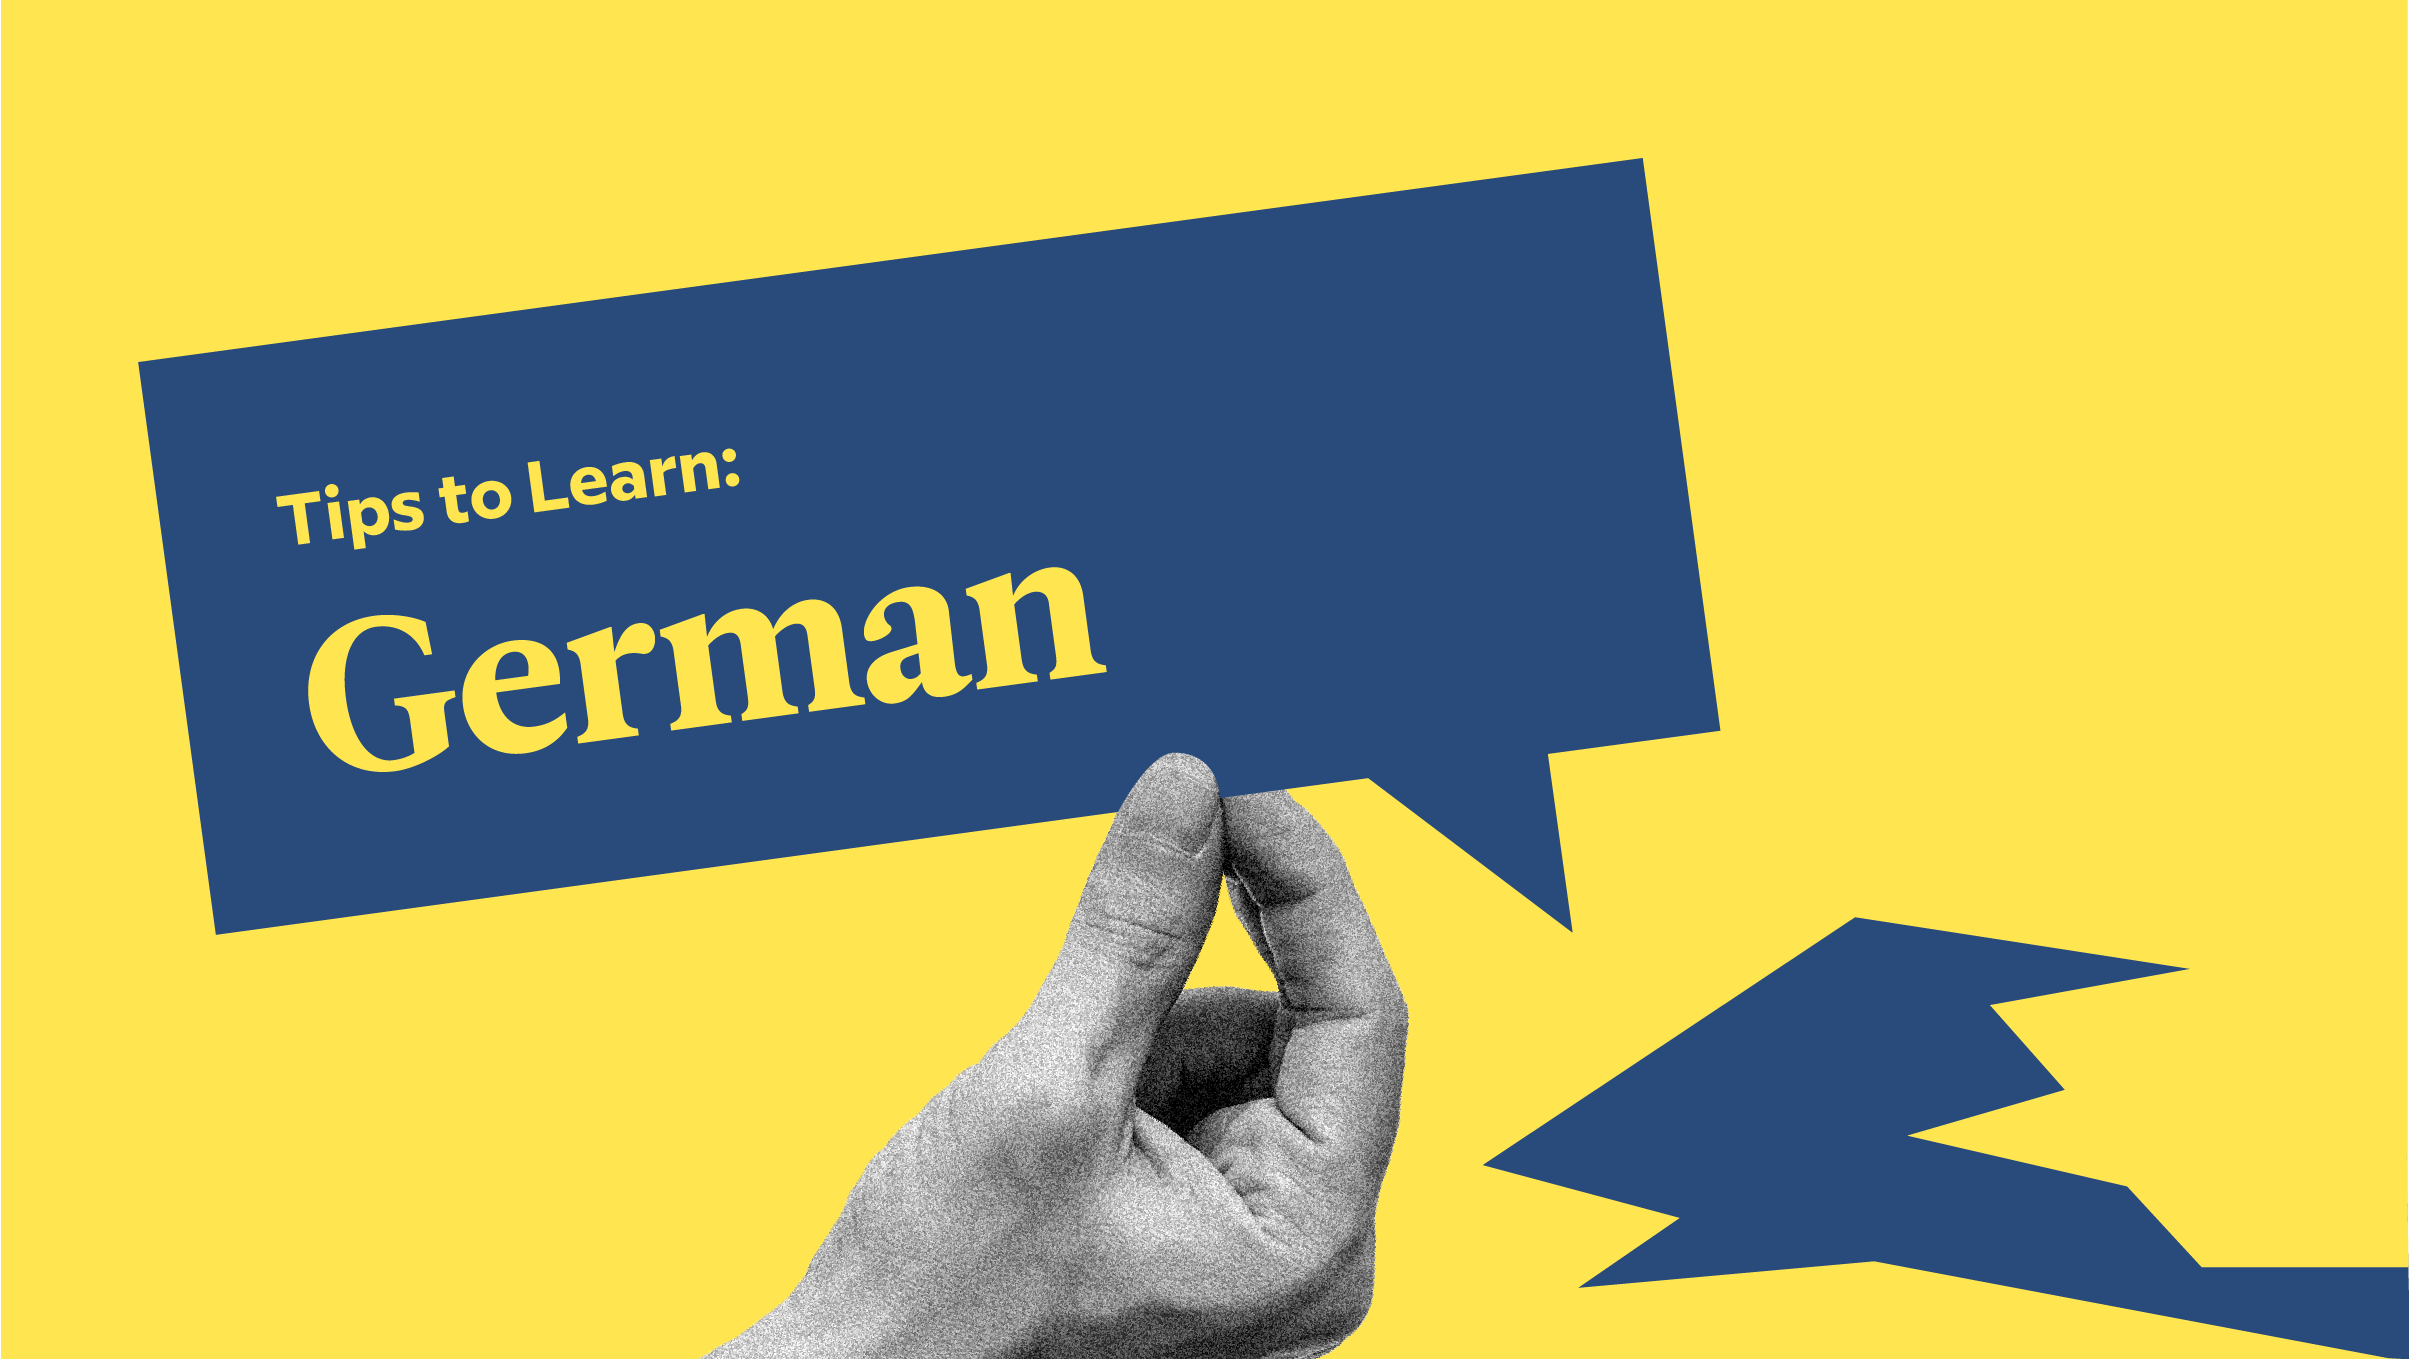 5 Very Good, Very Specific Tips To Learn German